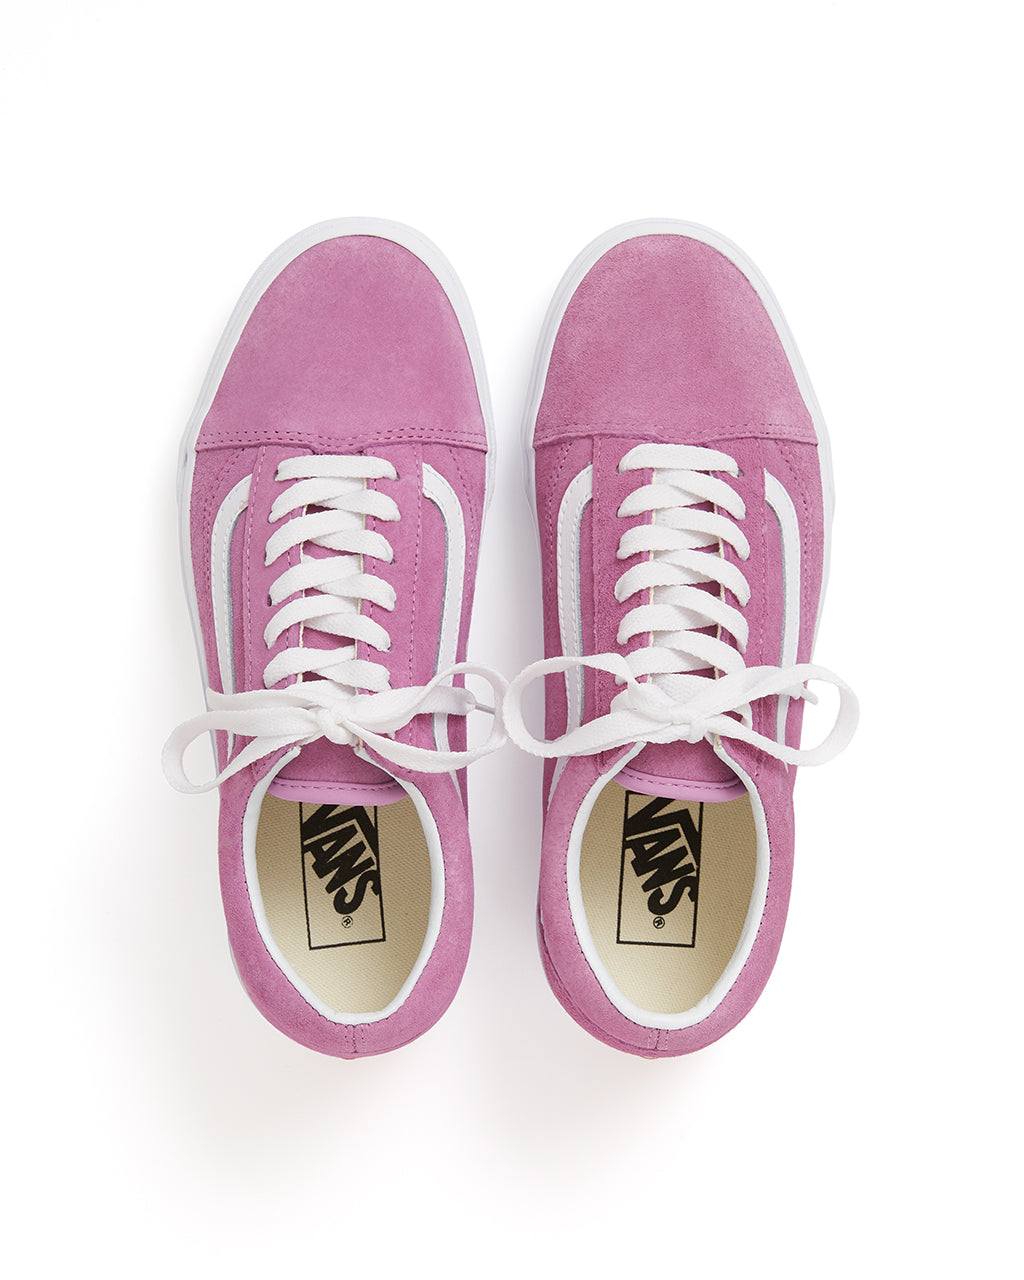 5c7fda5183e3 Old Skool - Violet Suede by vans - shoes - ban.do